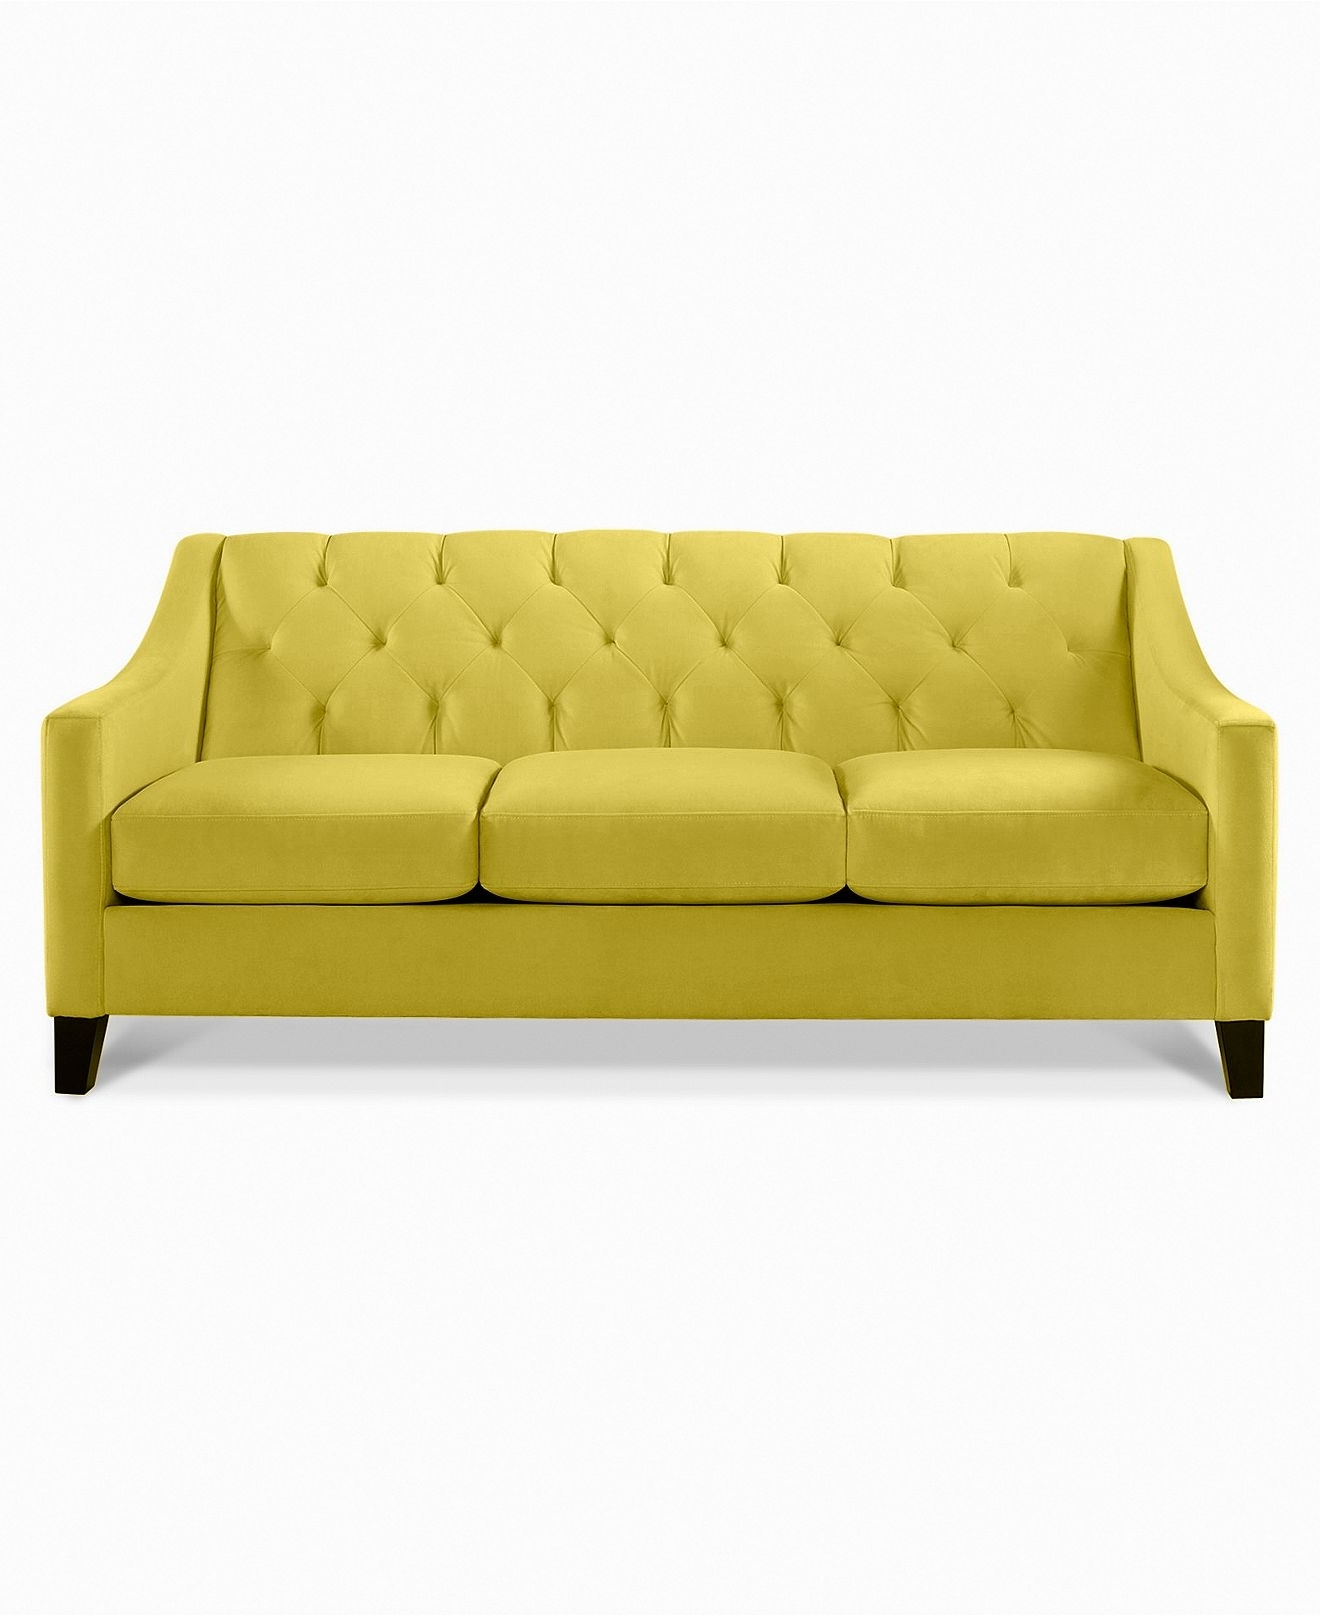 2019 Dufresne Sectional Sofas With Furniture : Button Tufted Fabric Sofa Sofa Dallas Furniture Ottawa (View 1 of 20)